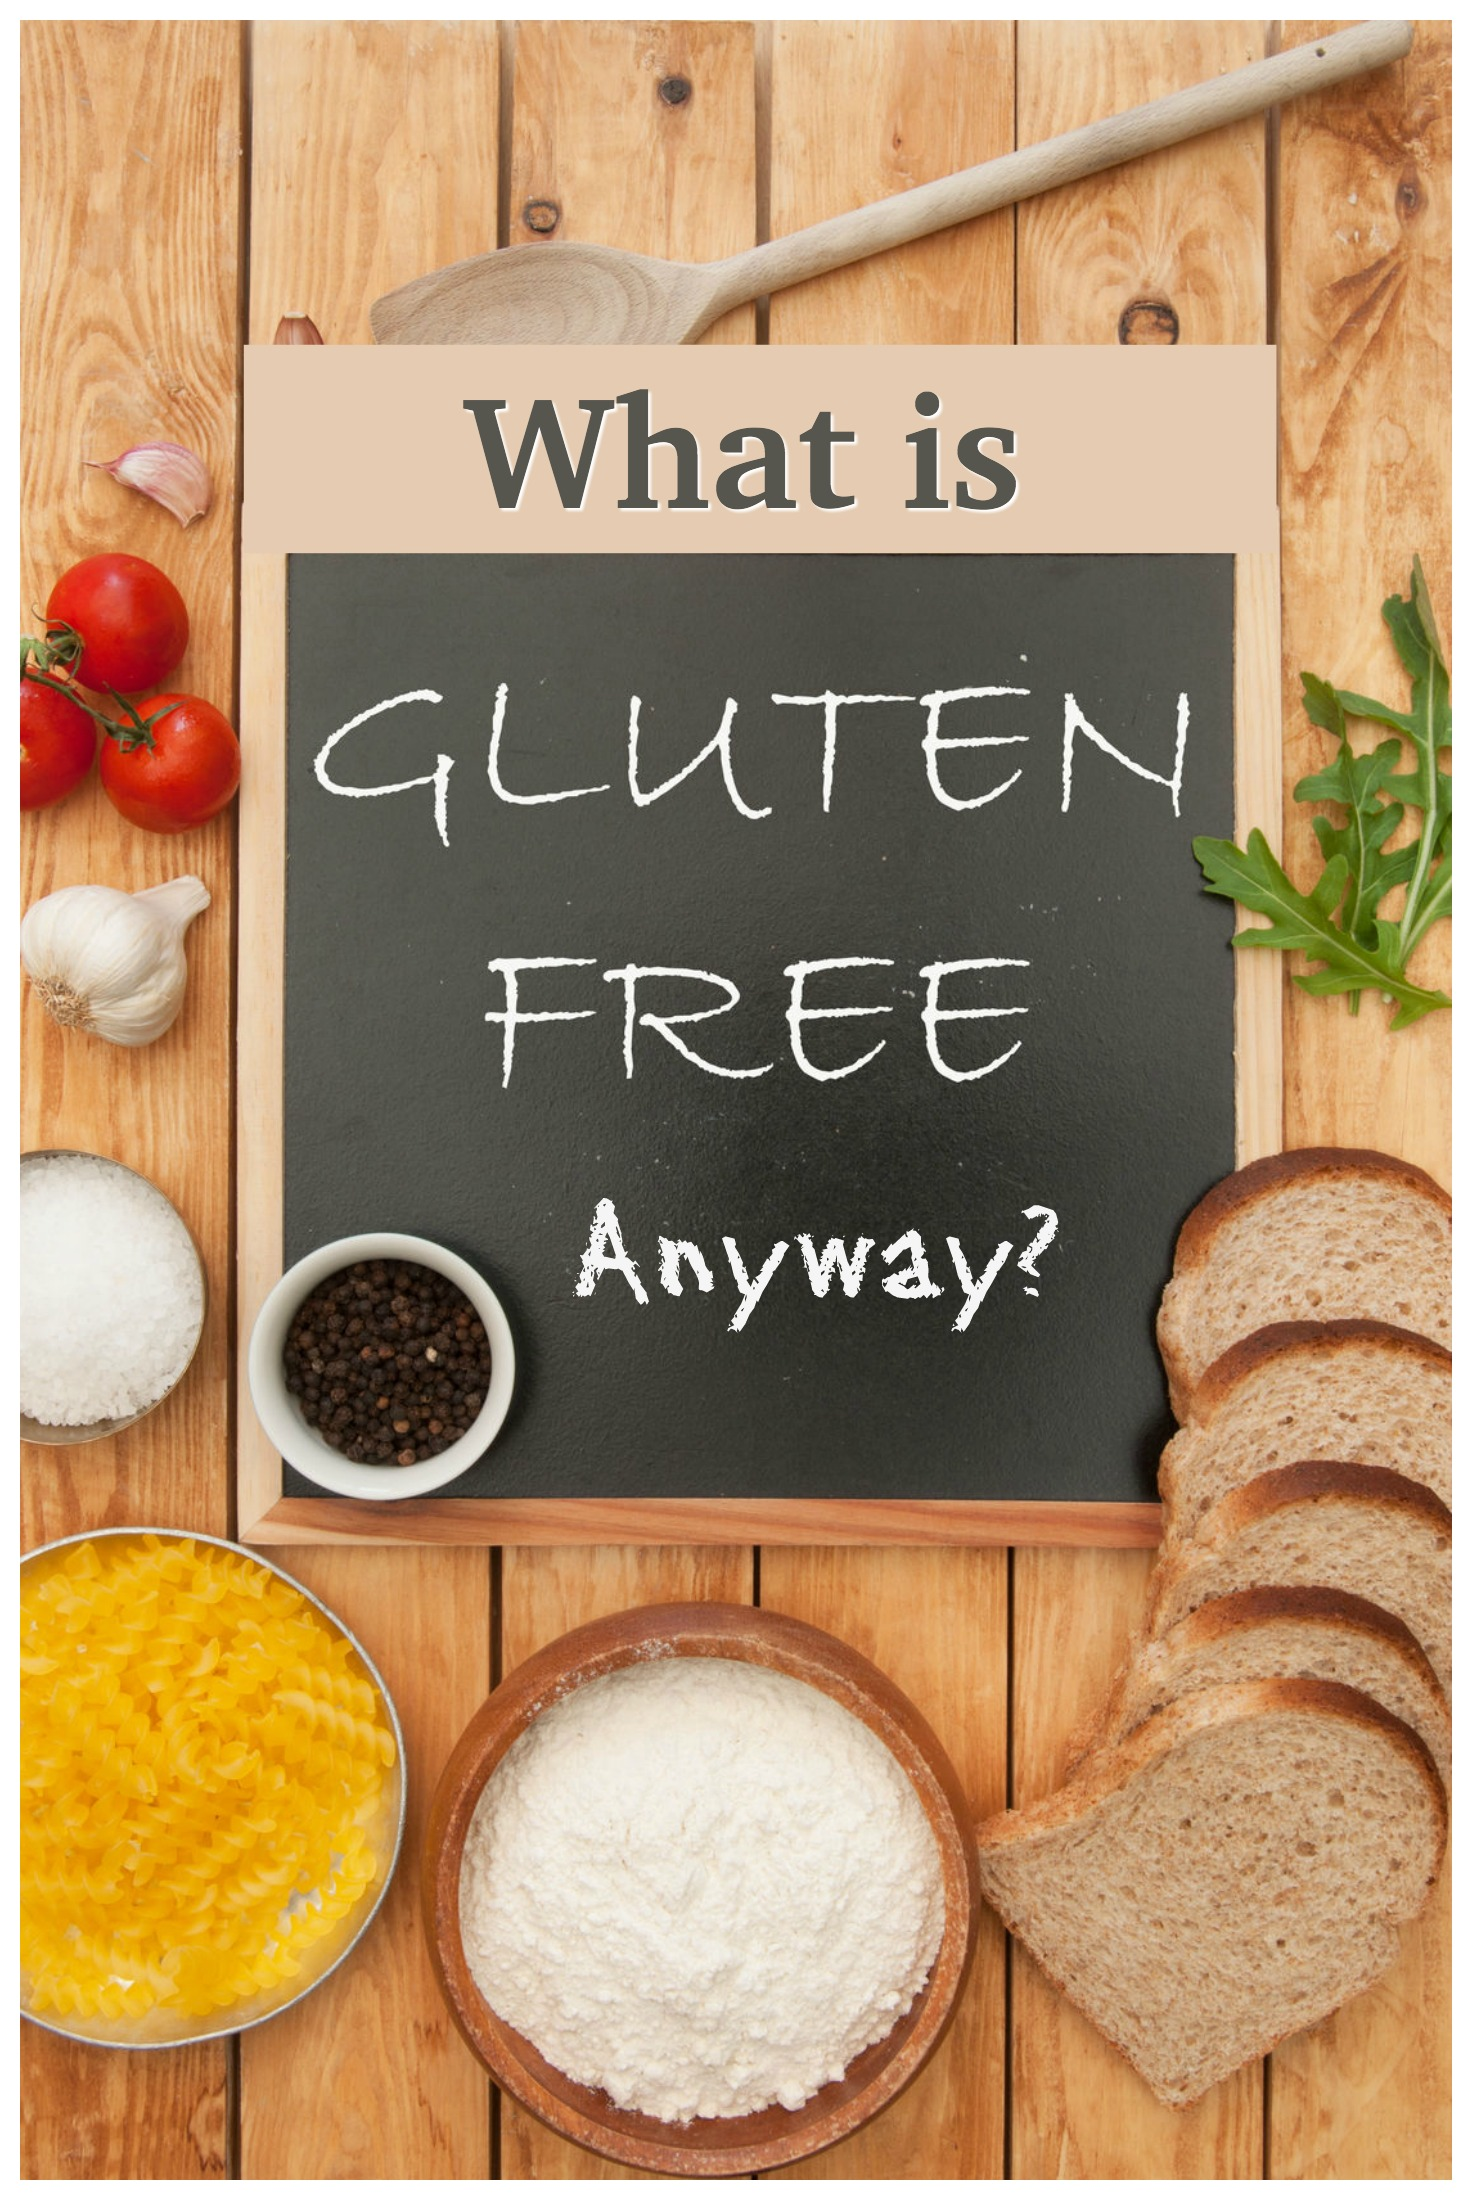 What is Gluten-Free? What Does it mean? Is it Healthier?